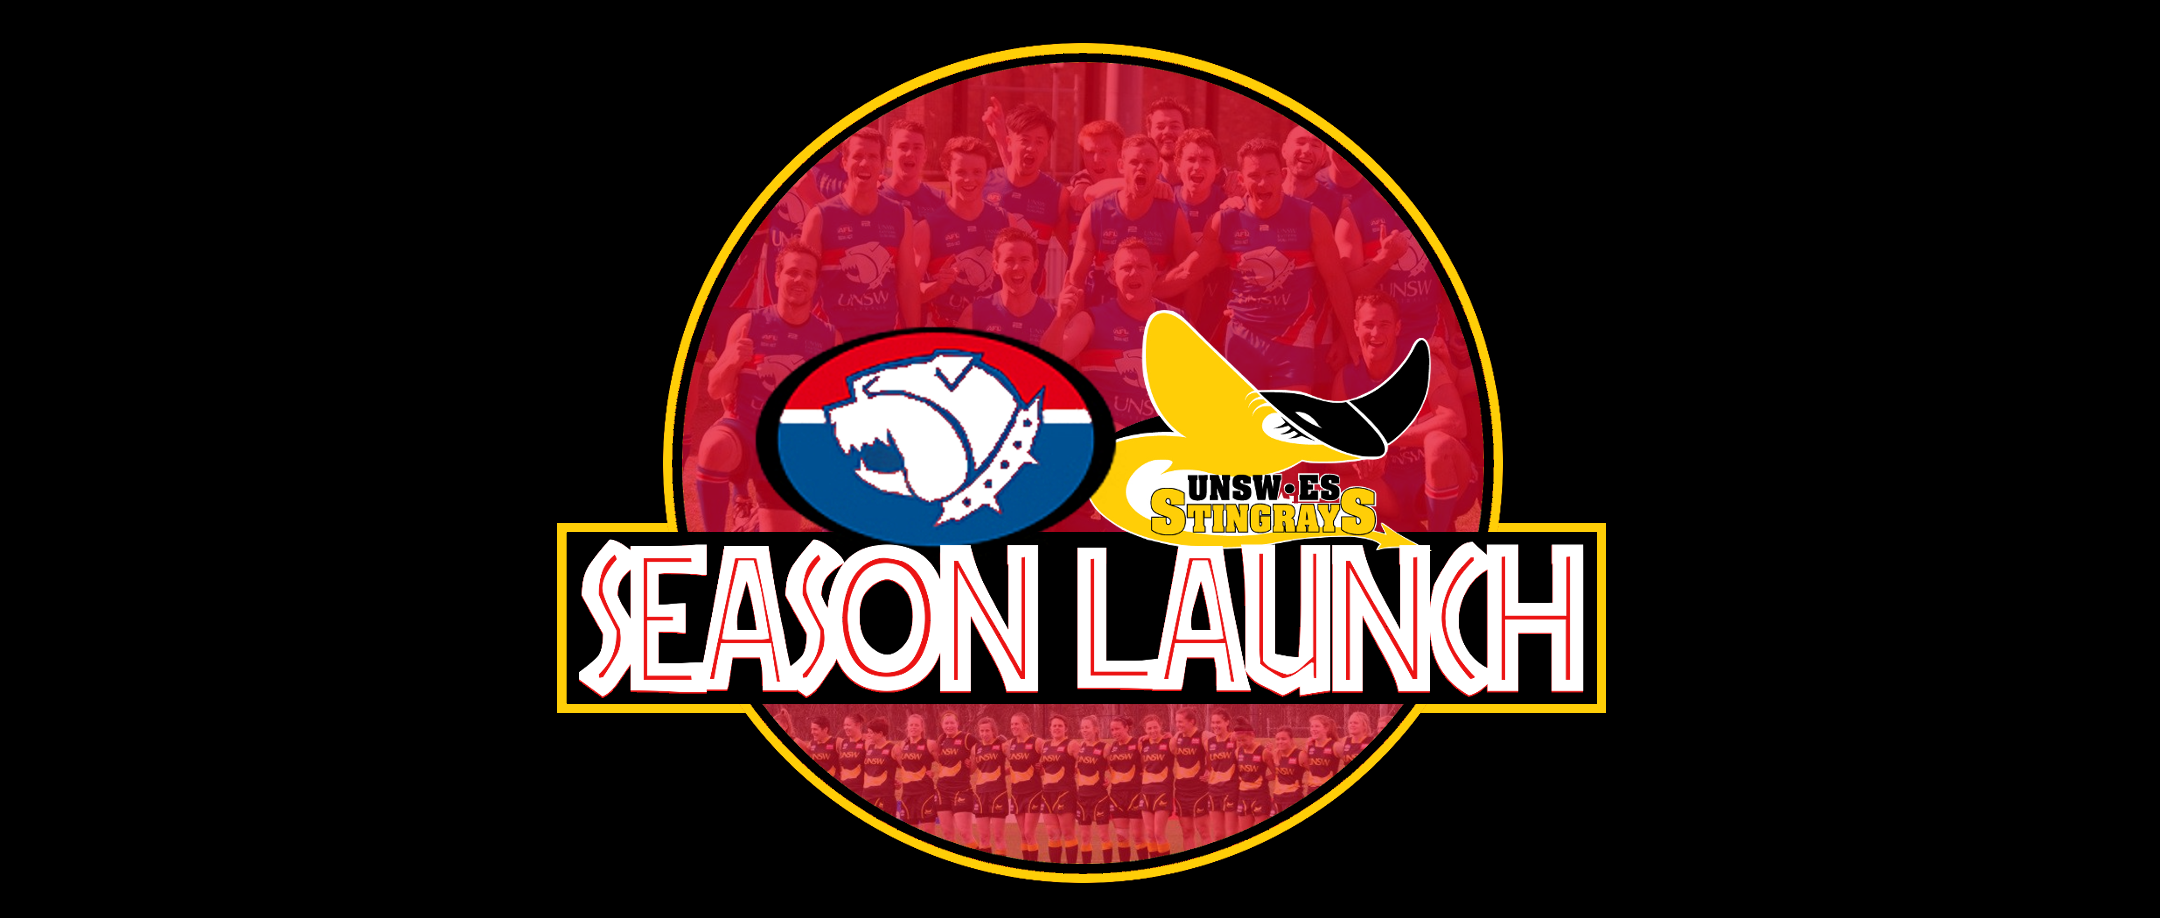 UNSW-ES AFL Club Season Launch 2016